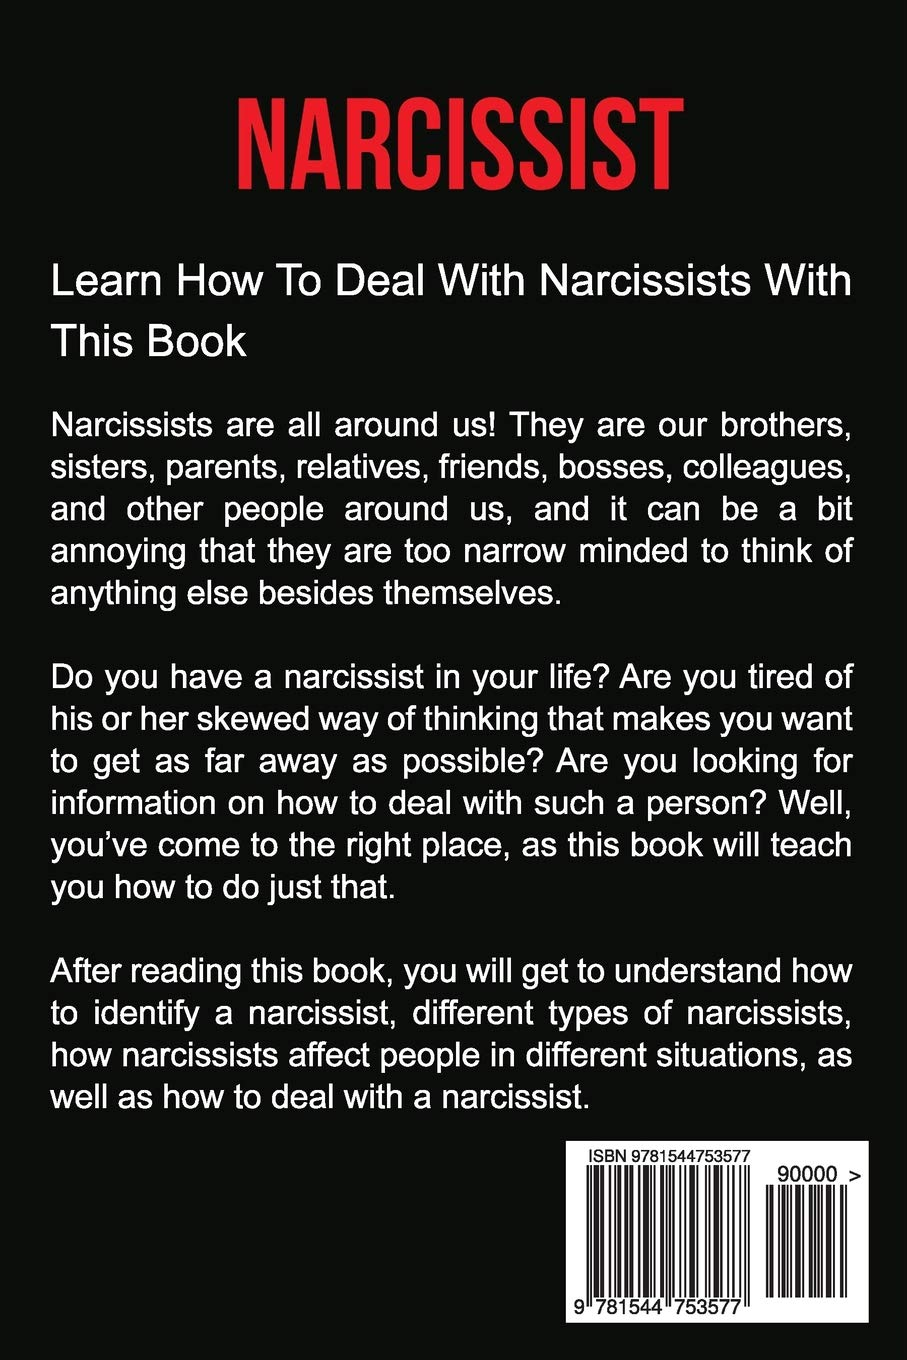 What annoys a narcissist